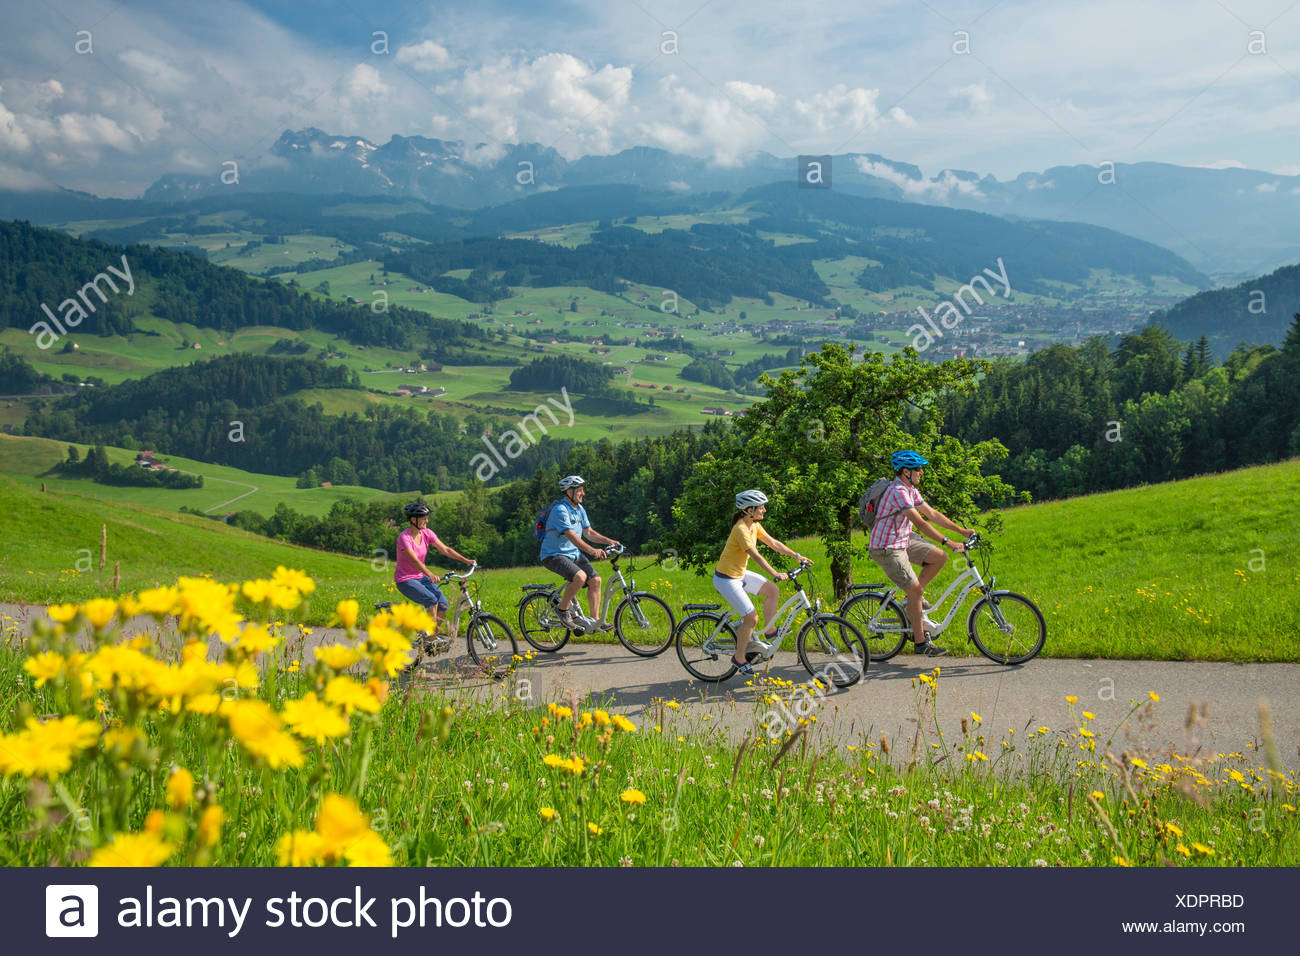 Heart route, biker, heart route, bicycle, bicycles, bike, riding a bicycle, canton, Appenzell, Innerroden, Flyer, eBike, electri - Stock Image